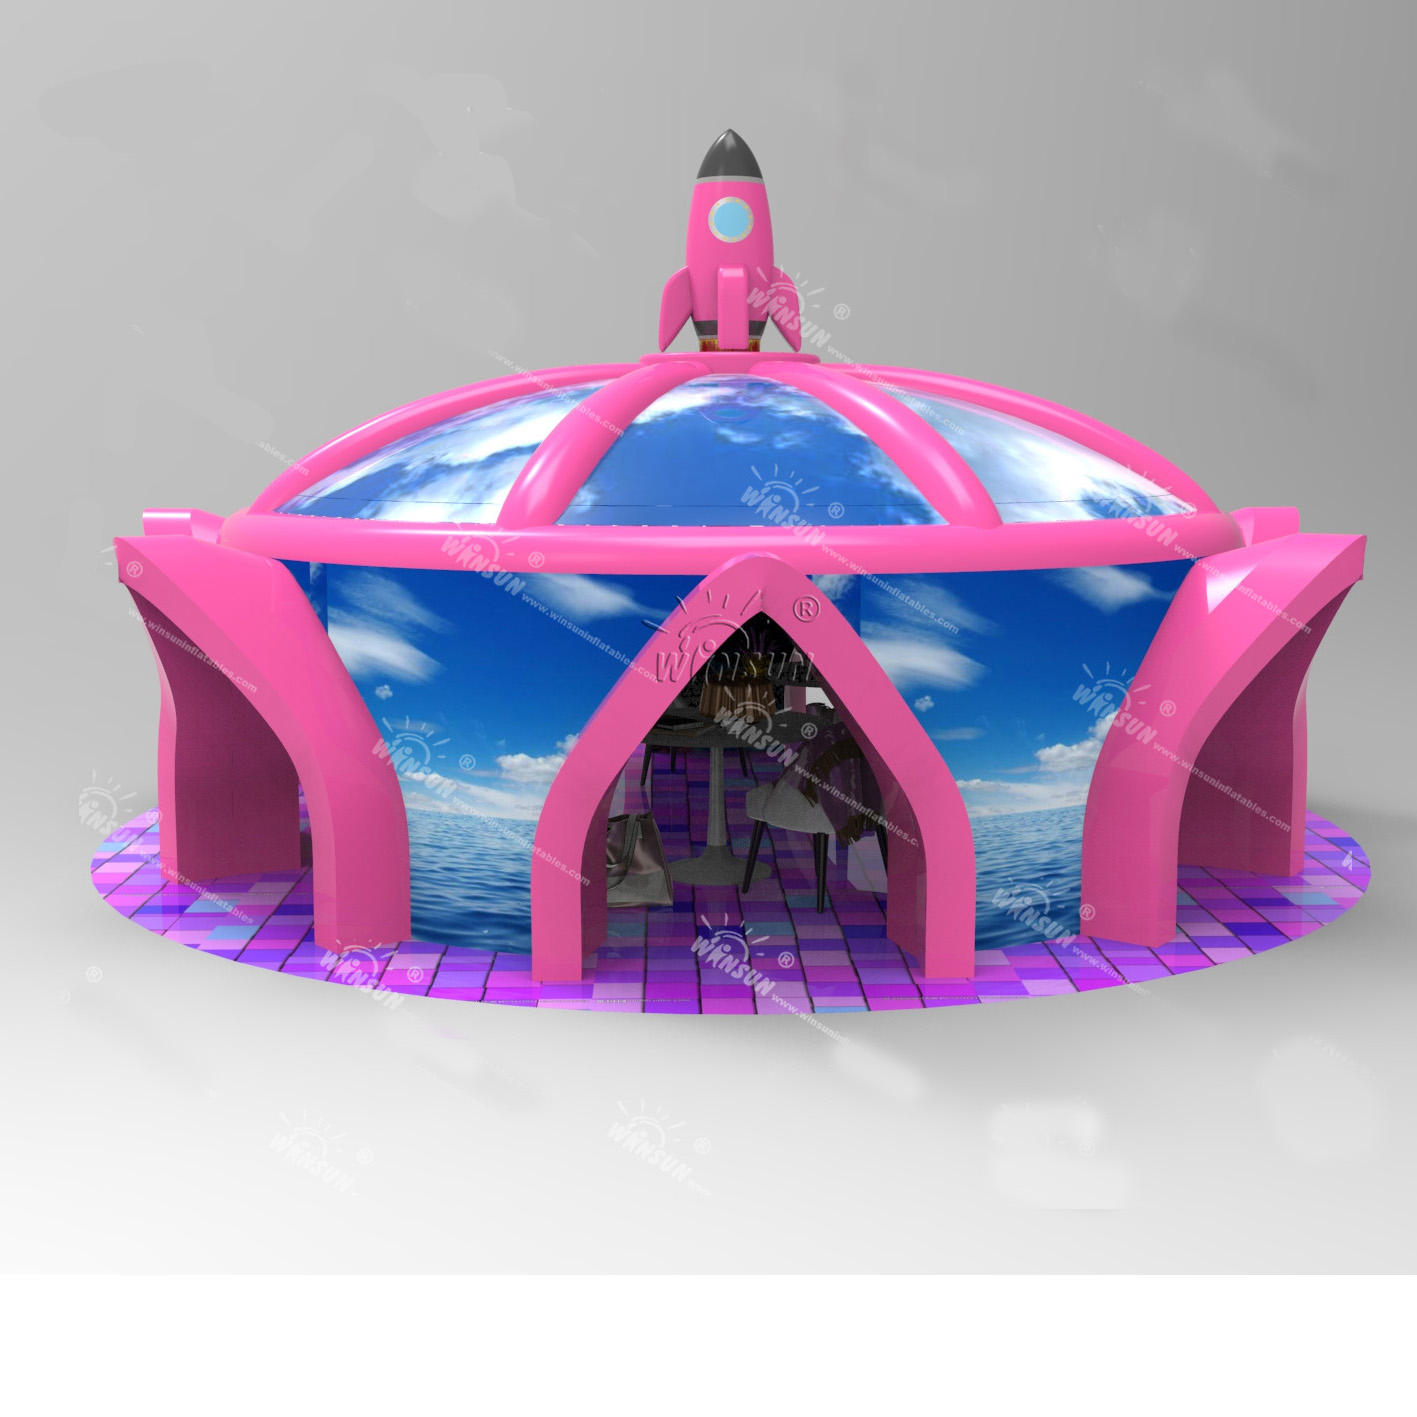 New design rocket inflatable dome camping tent, inflatable yurt tent with doors